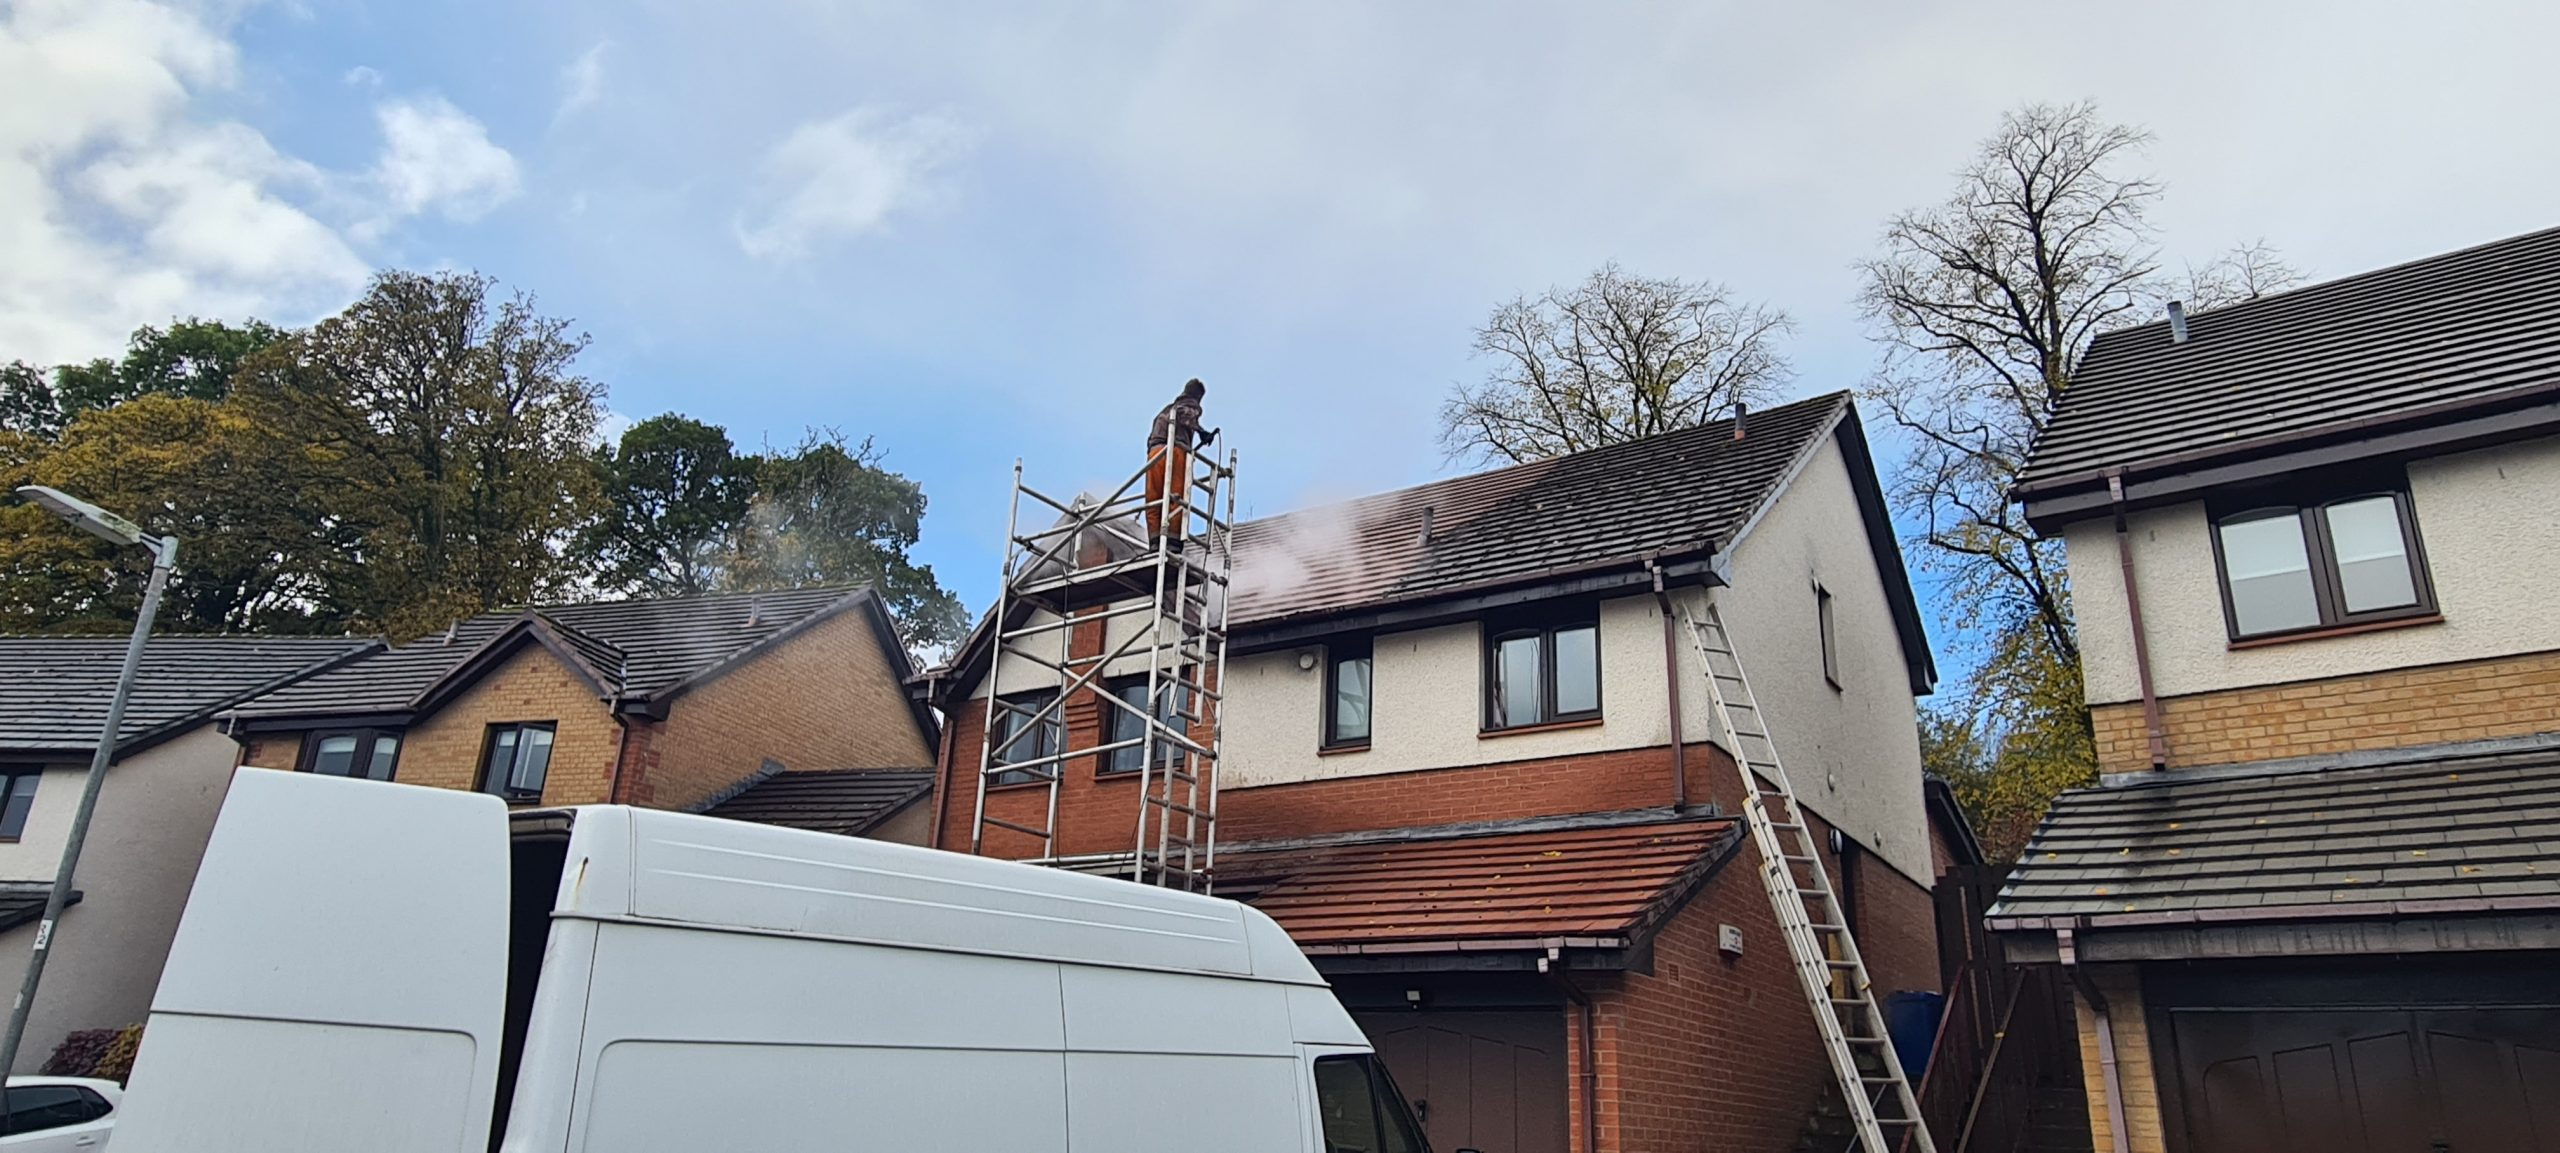 Roof Cleaning Costs Glasgow